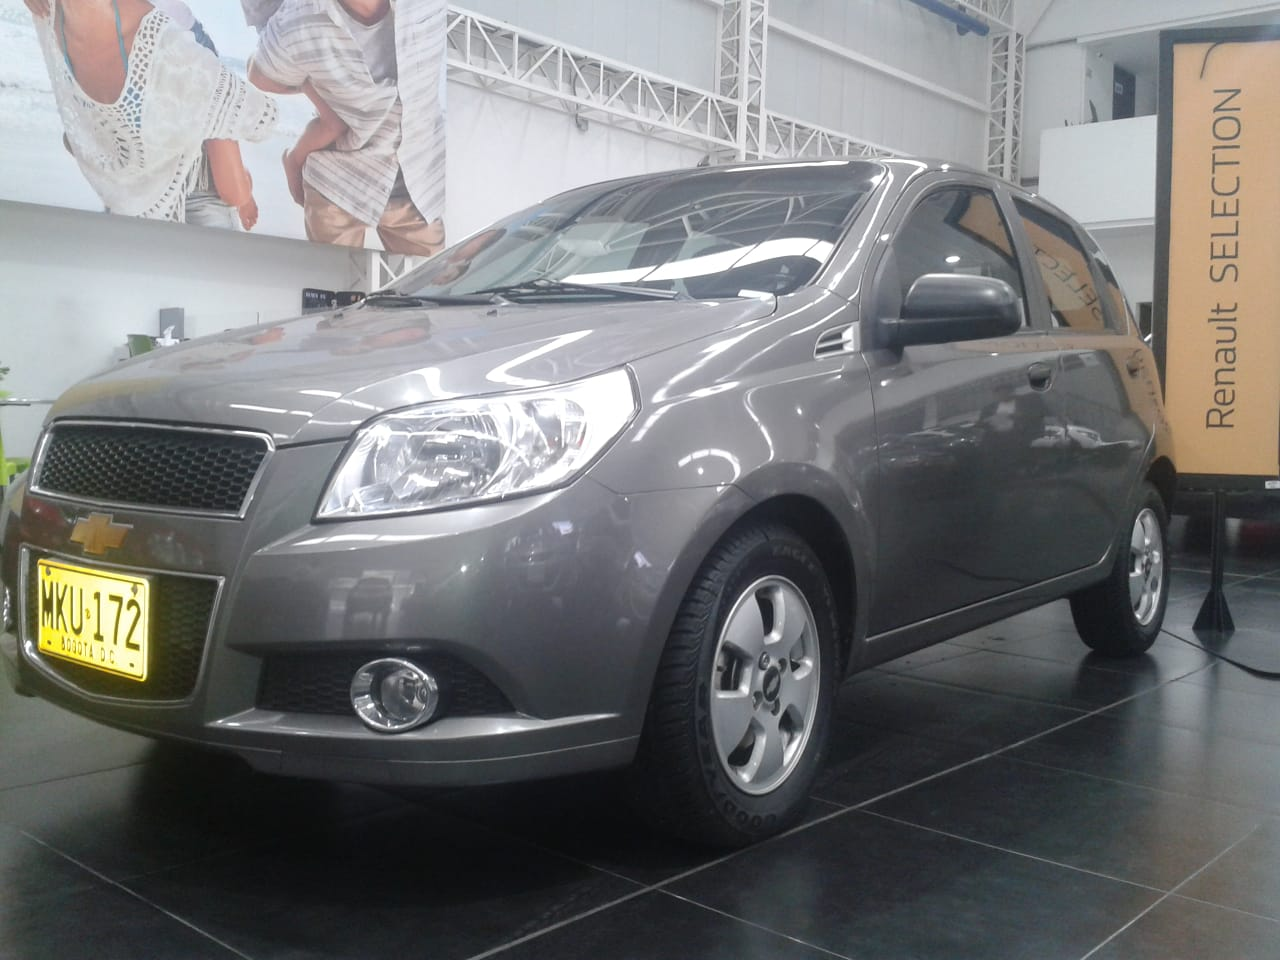 CHEVROLET AVEO EMOTION   MKU172